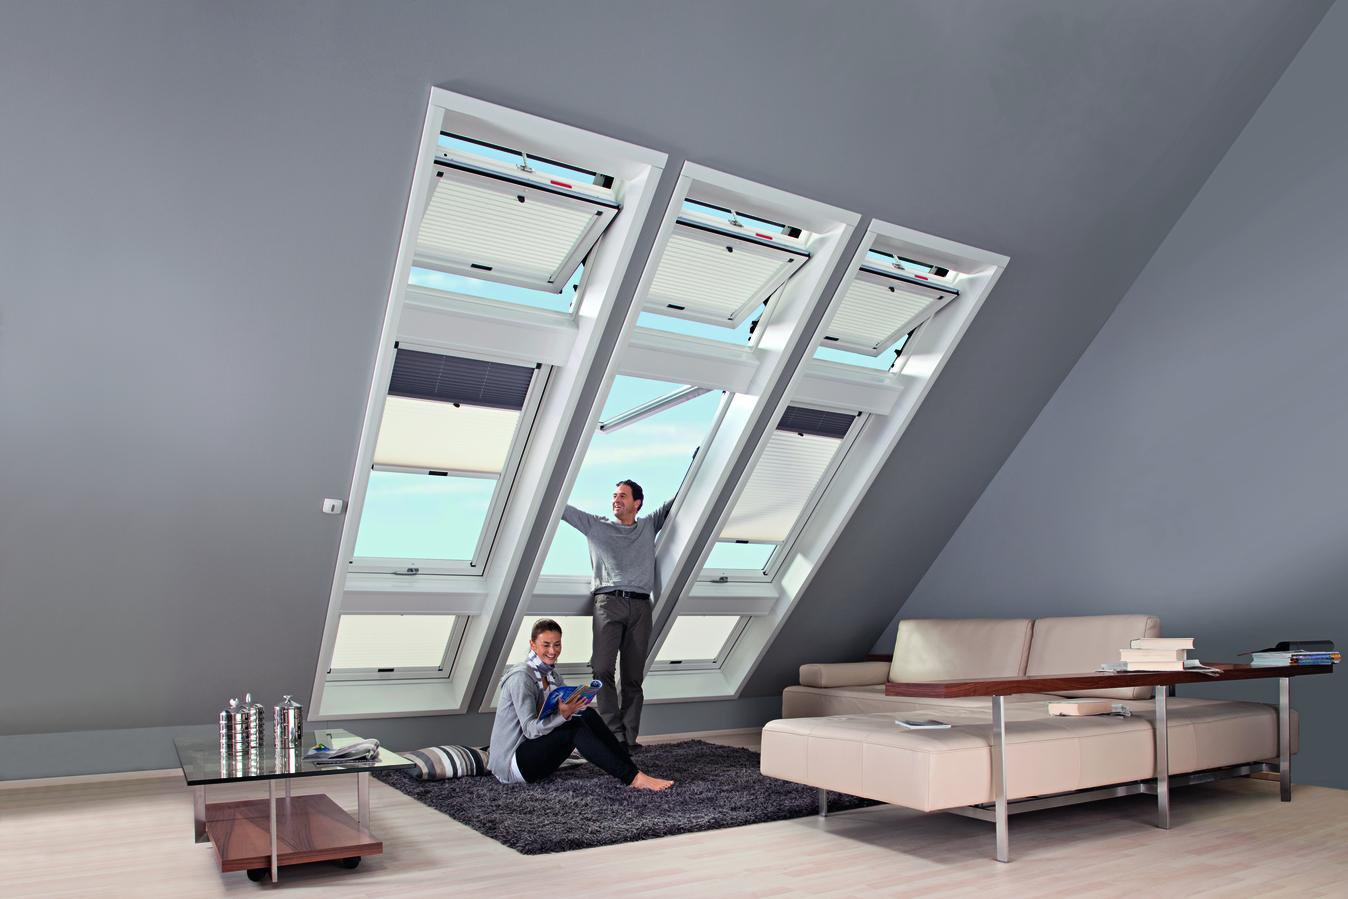 fr velux dachfenster innen best gallery of velux dachfenster rollos gnstig kaufen benz nach. Black Bedroom Furniture Sets. Home Design Ideas